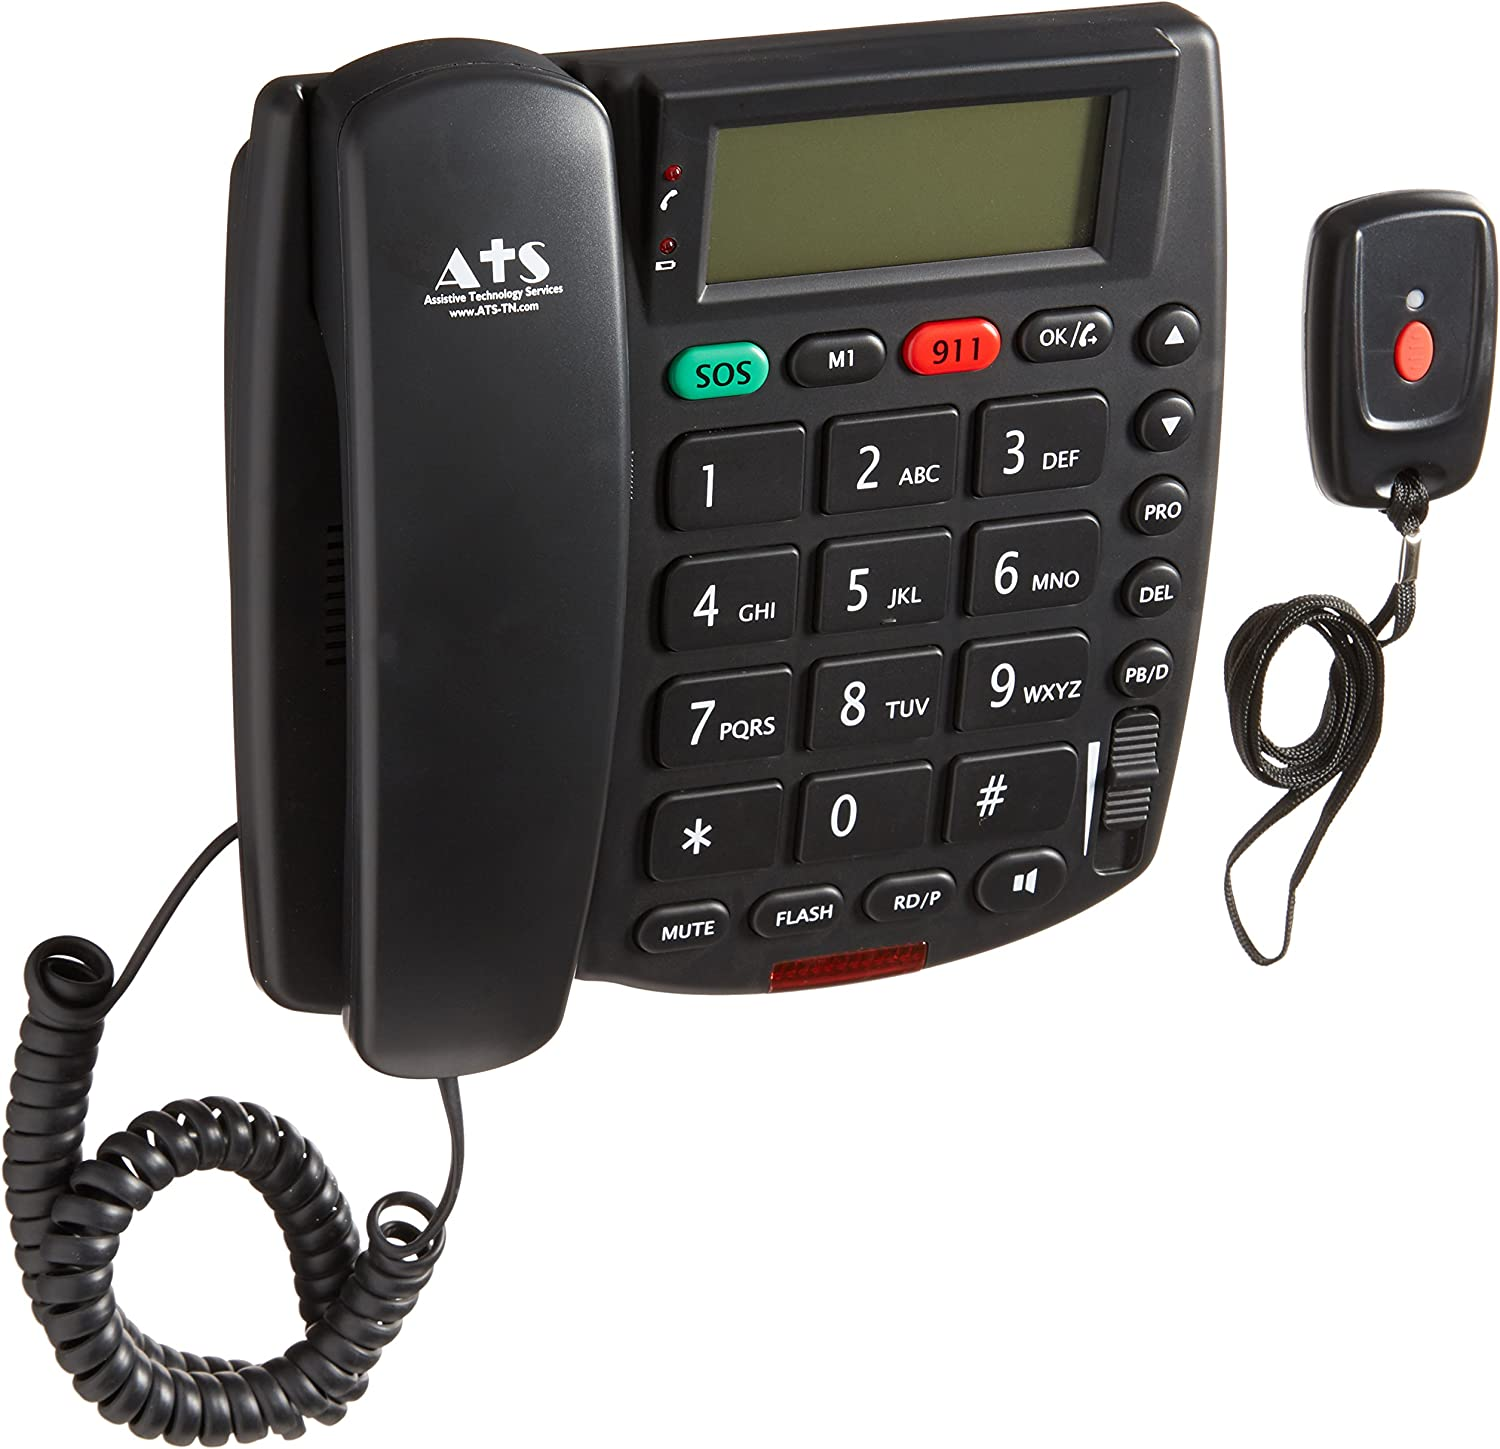 NO MONTHLY CHARGES SENIOR LIFE GUARDIAN MEDICAL EMERGENCY ALERT PHONE SYSTEM